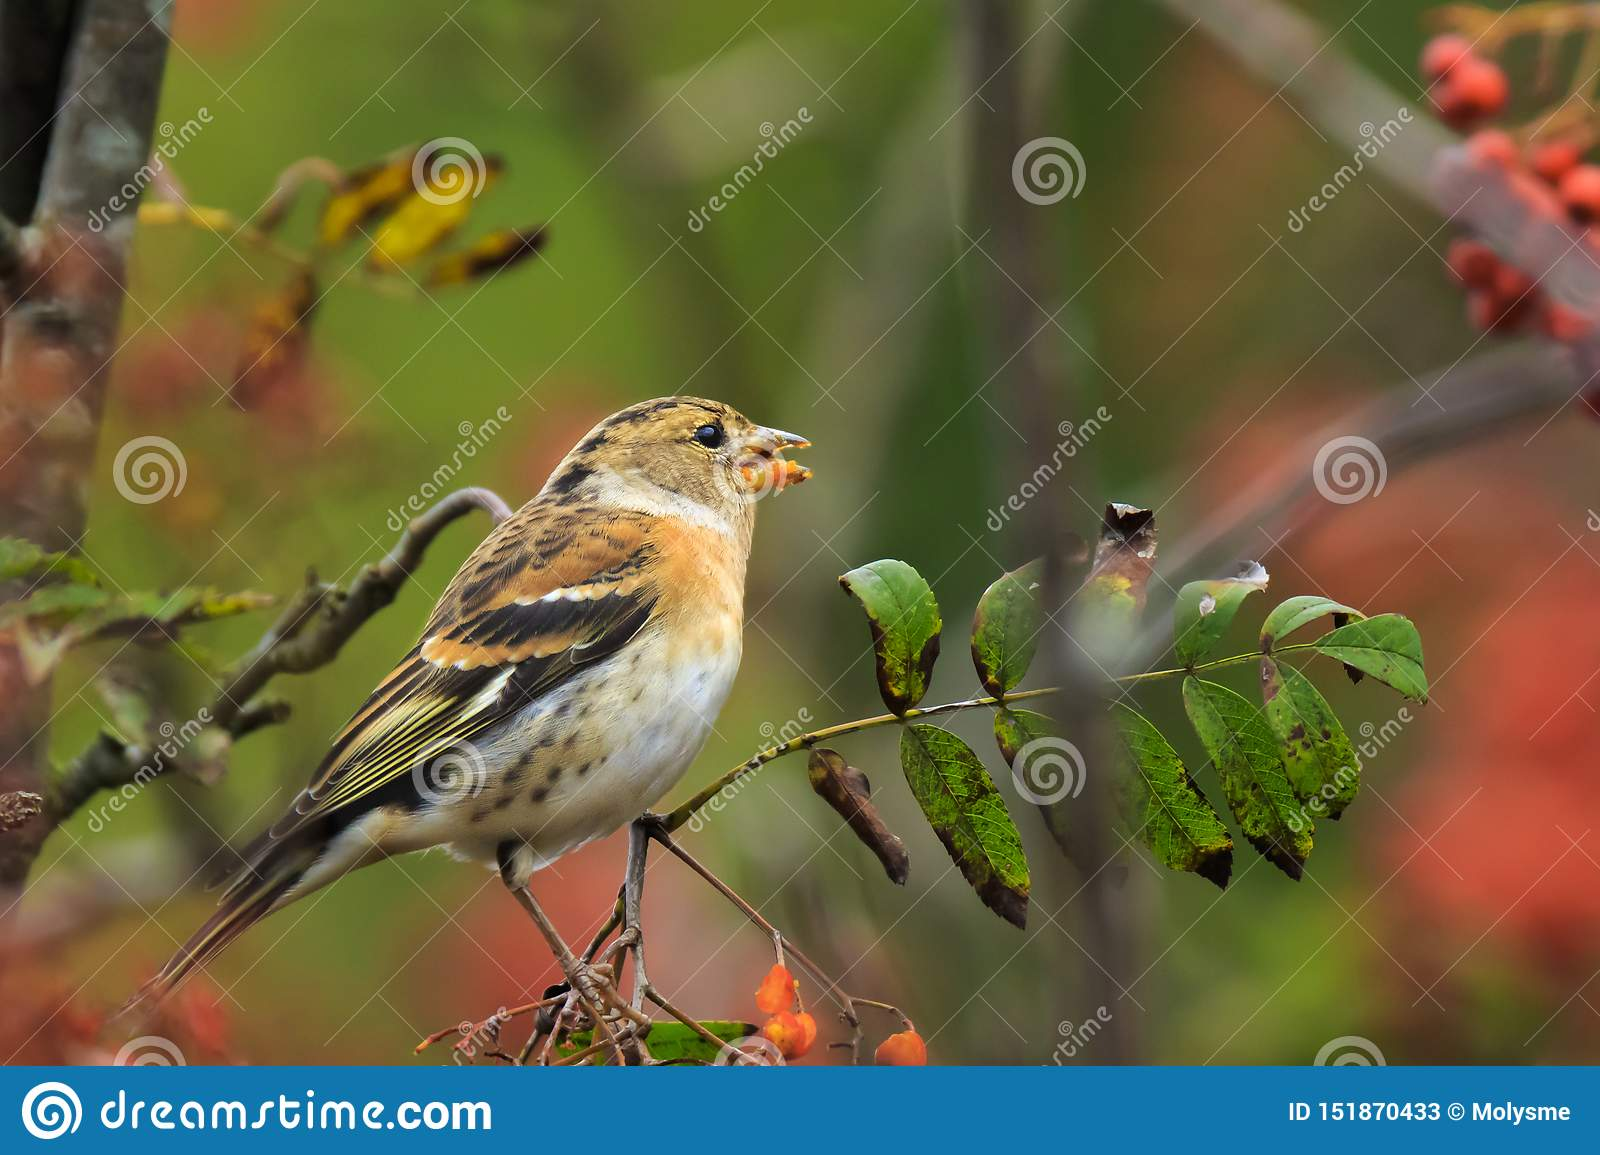 Brambling bird, Fringilla montifringilla, in winter plumage feeding berries